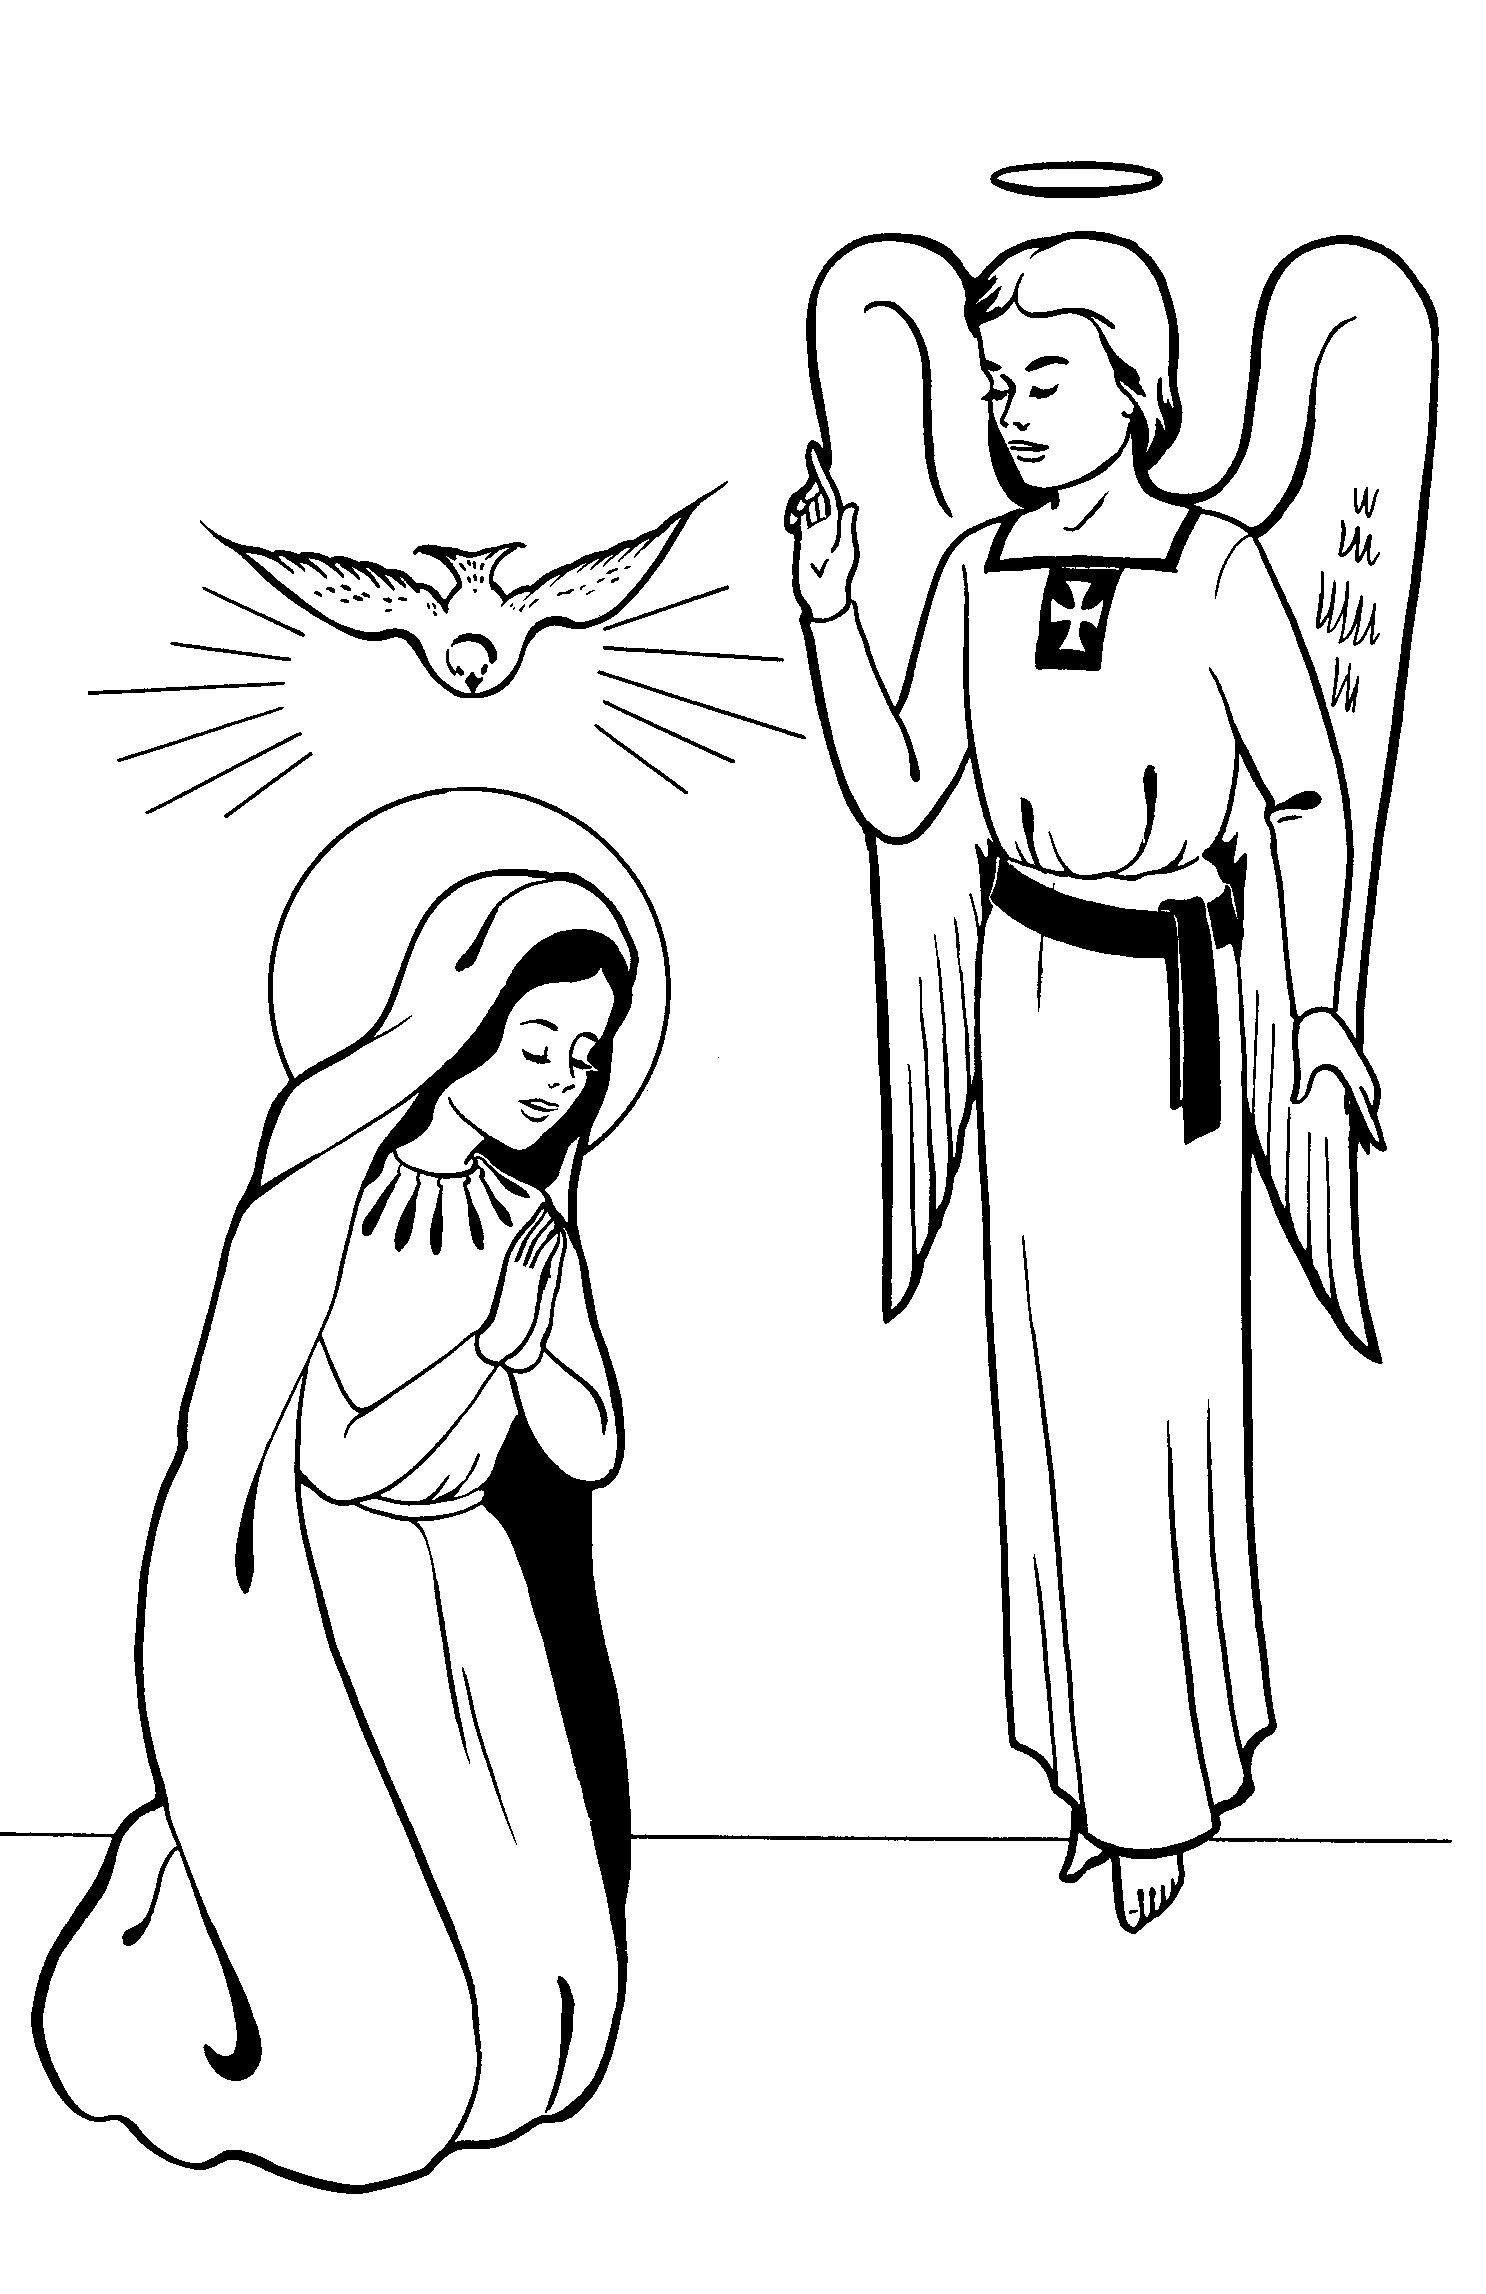 From The Hail Mary By Society Of Saint Paul 1952 Annunciationcoloringpage